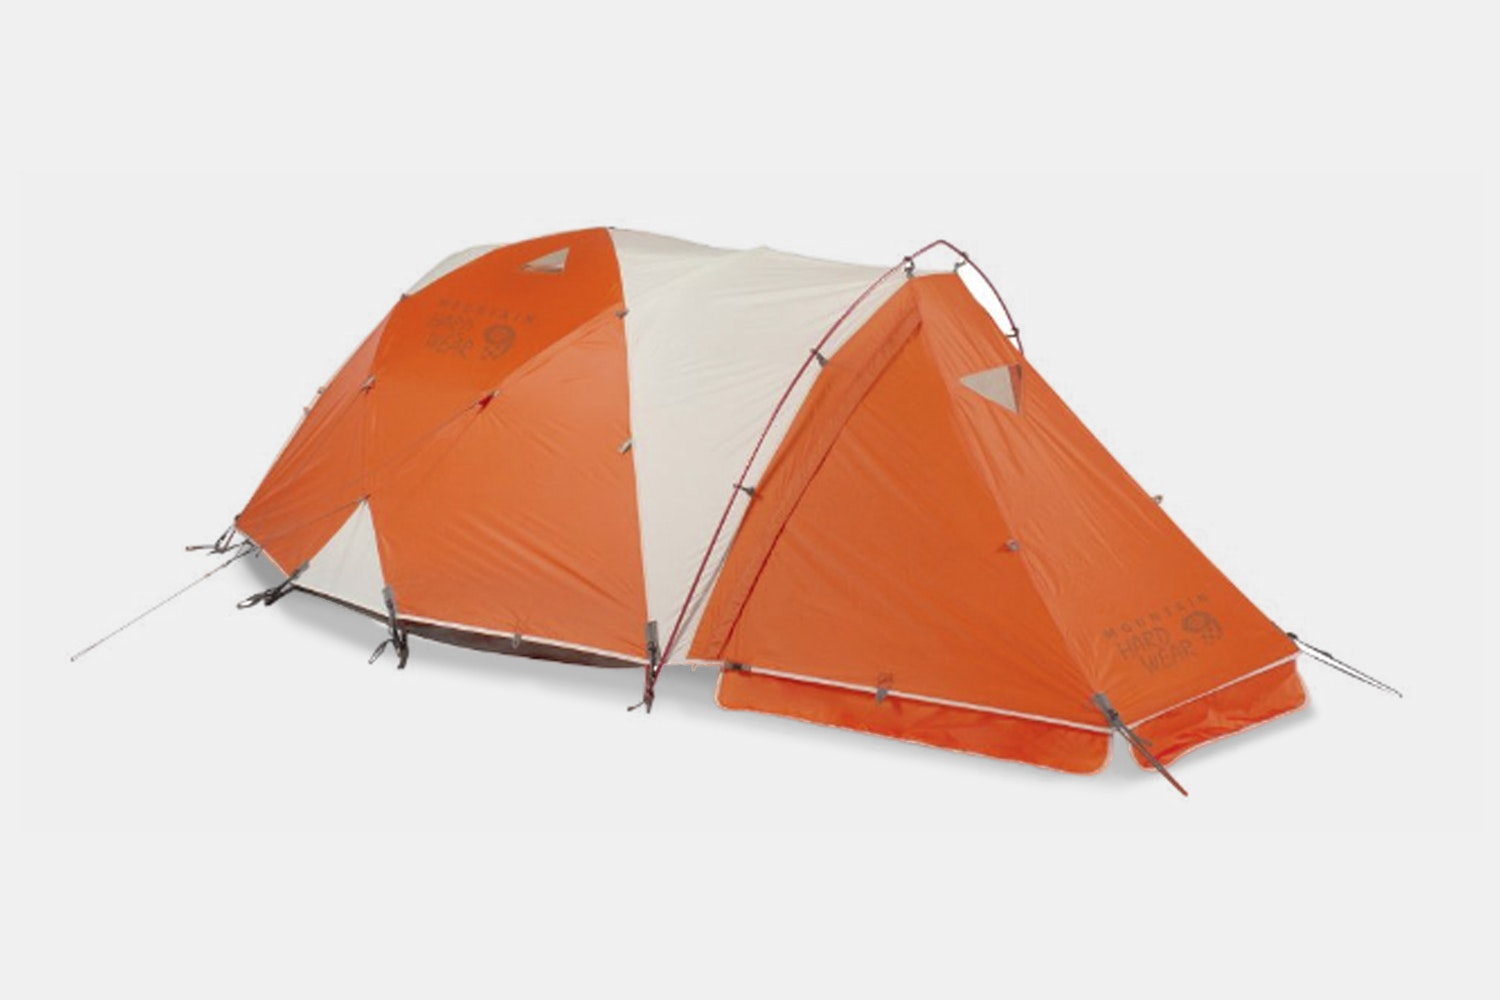 Mountain Hardwear Trango 4-Season Tents & Shop Mountain Hardwear Tent Replacement Parts u0026 Discover Community ...